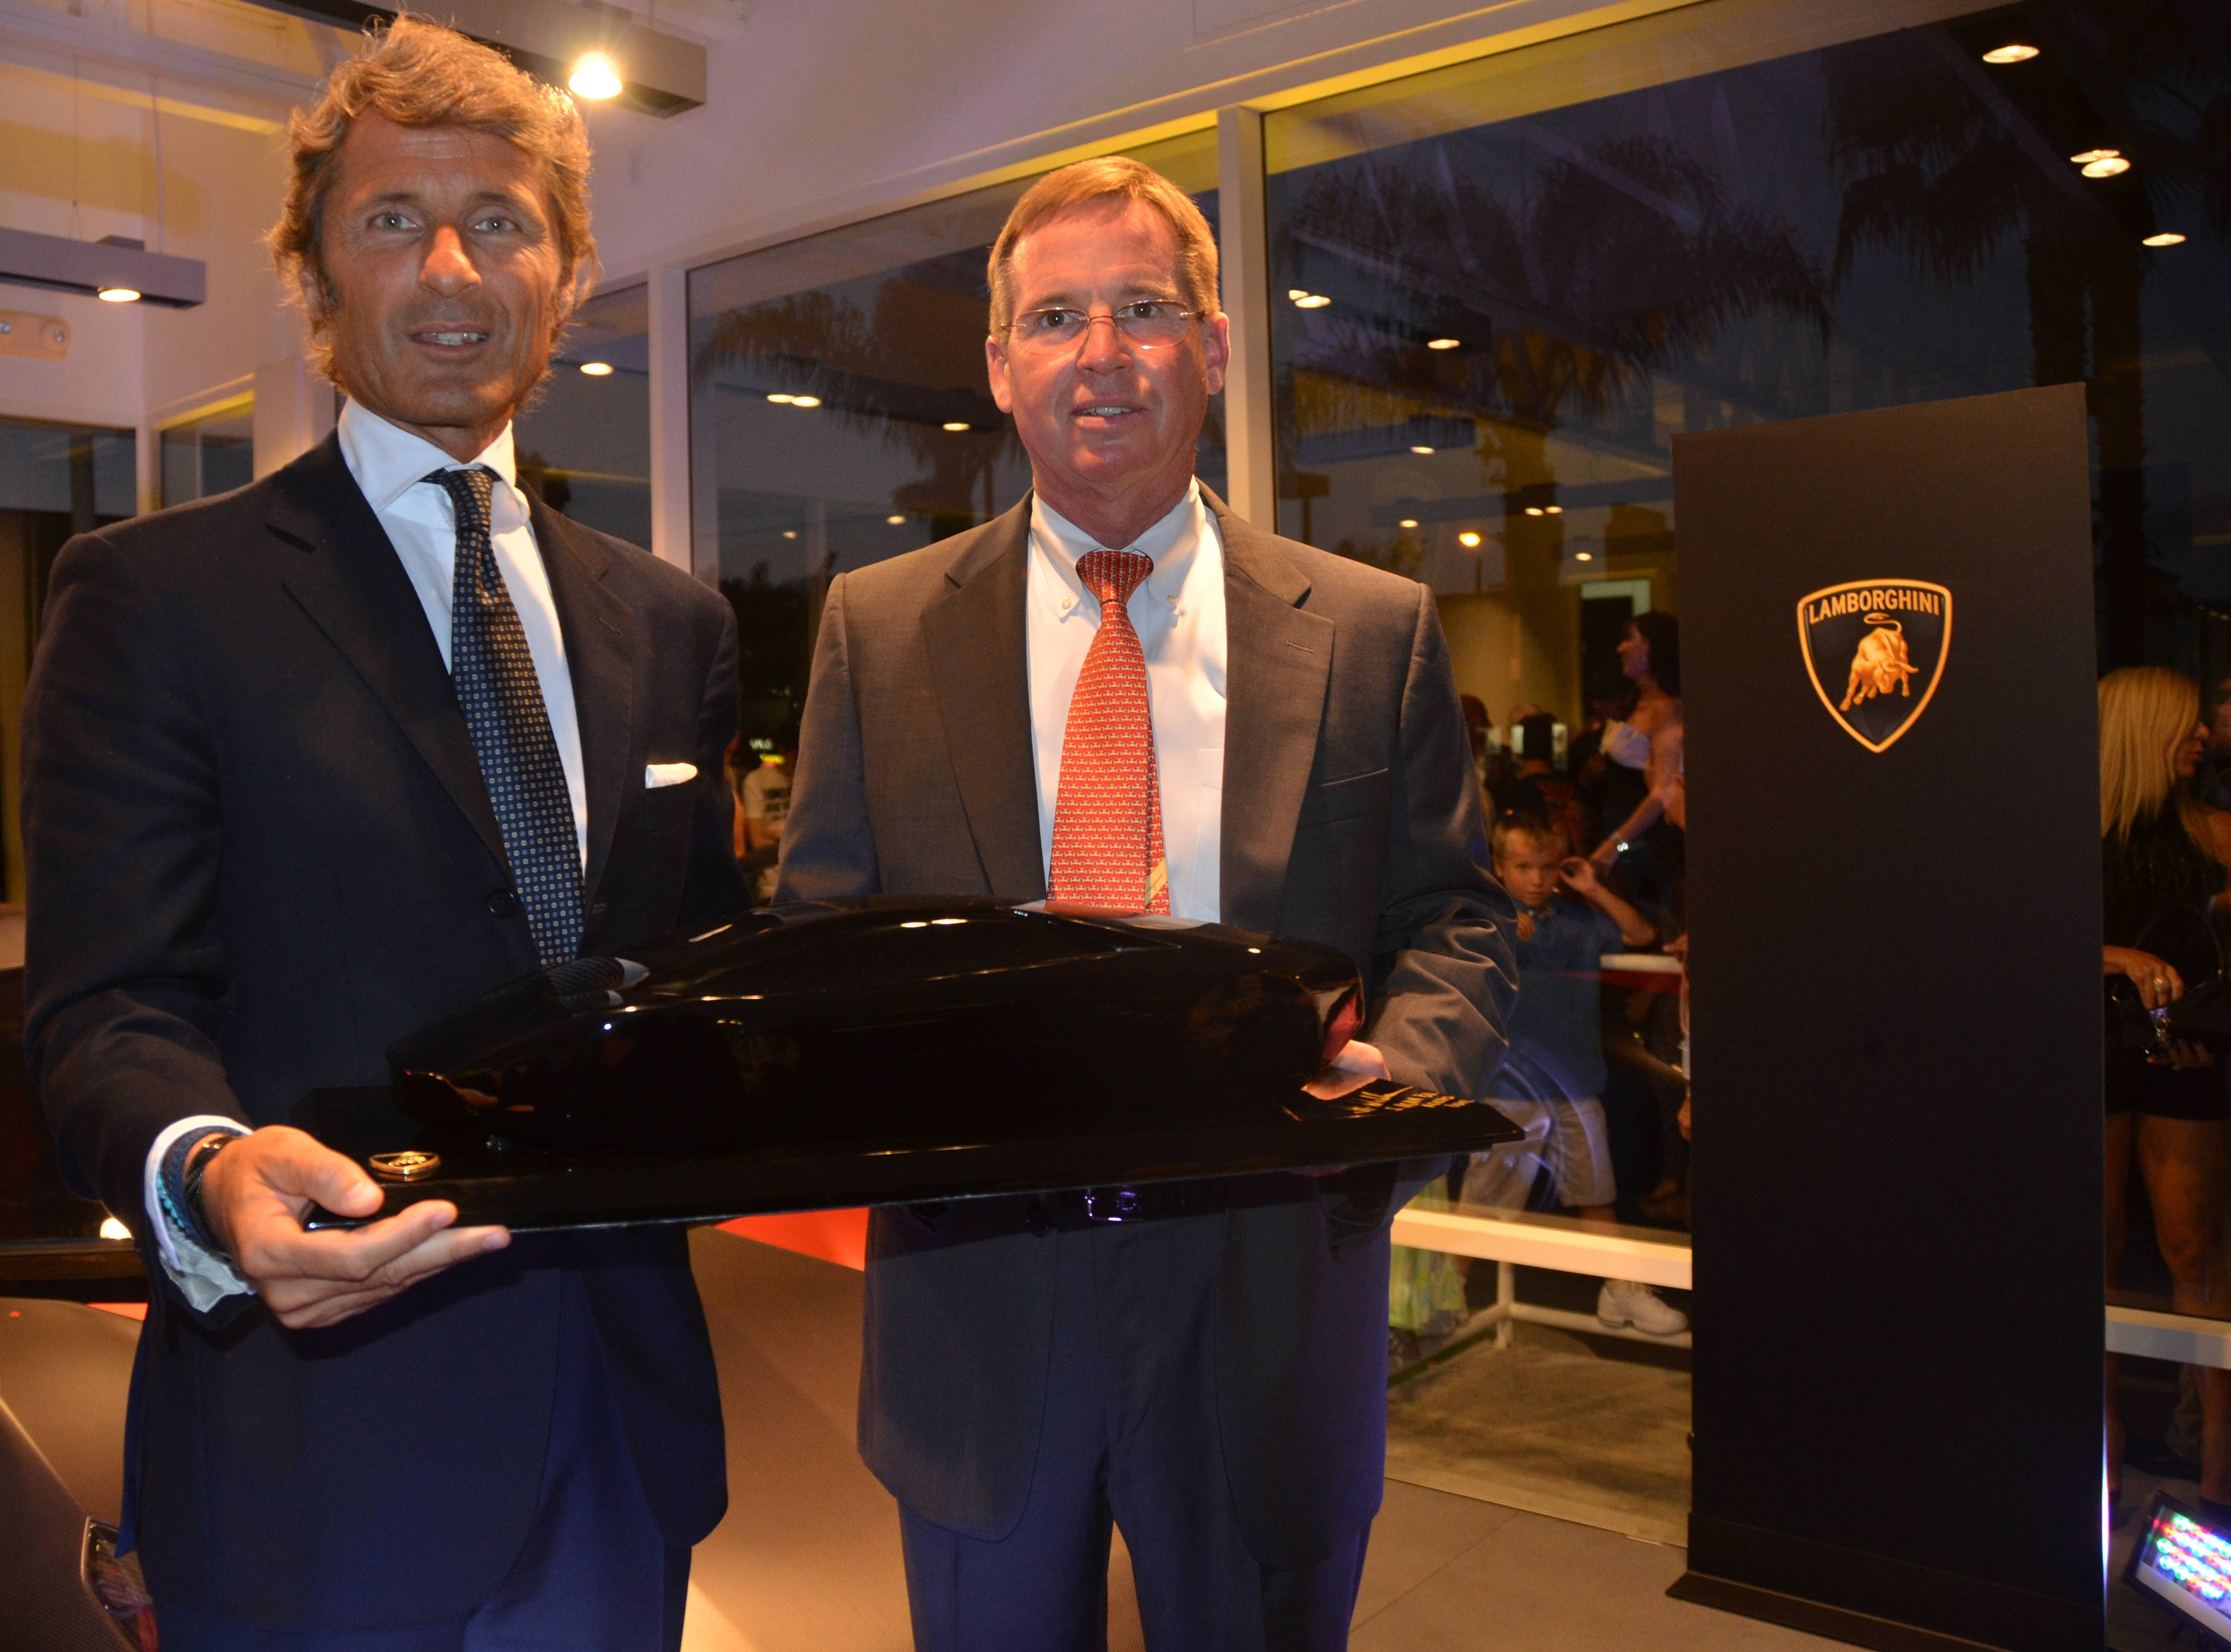 Lamborghini Newport Beach - Stephan Winkelmann (left) and Bill Story (right)